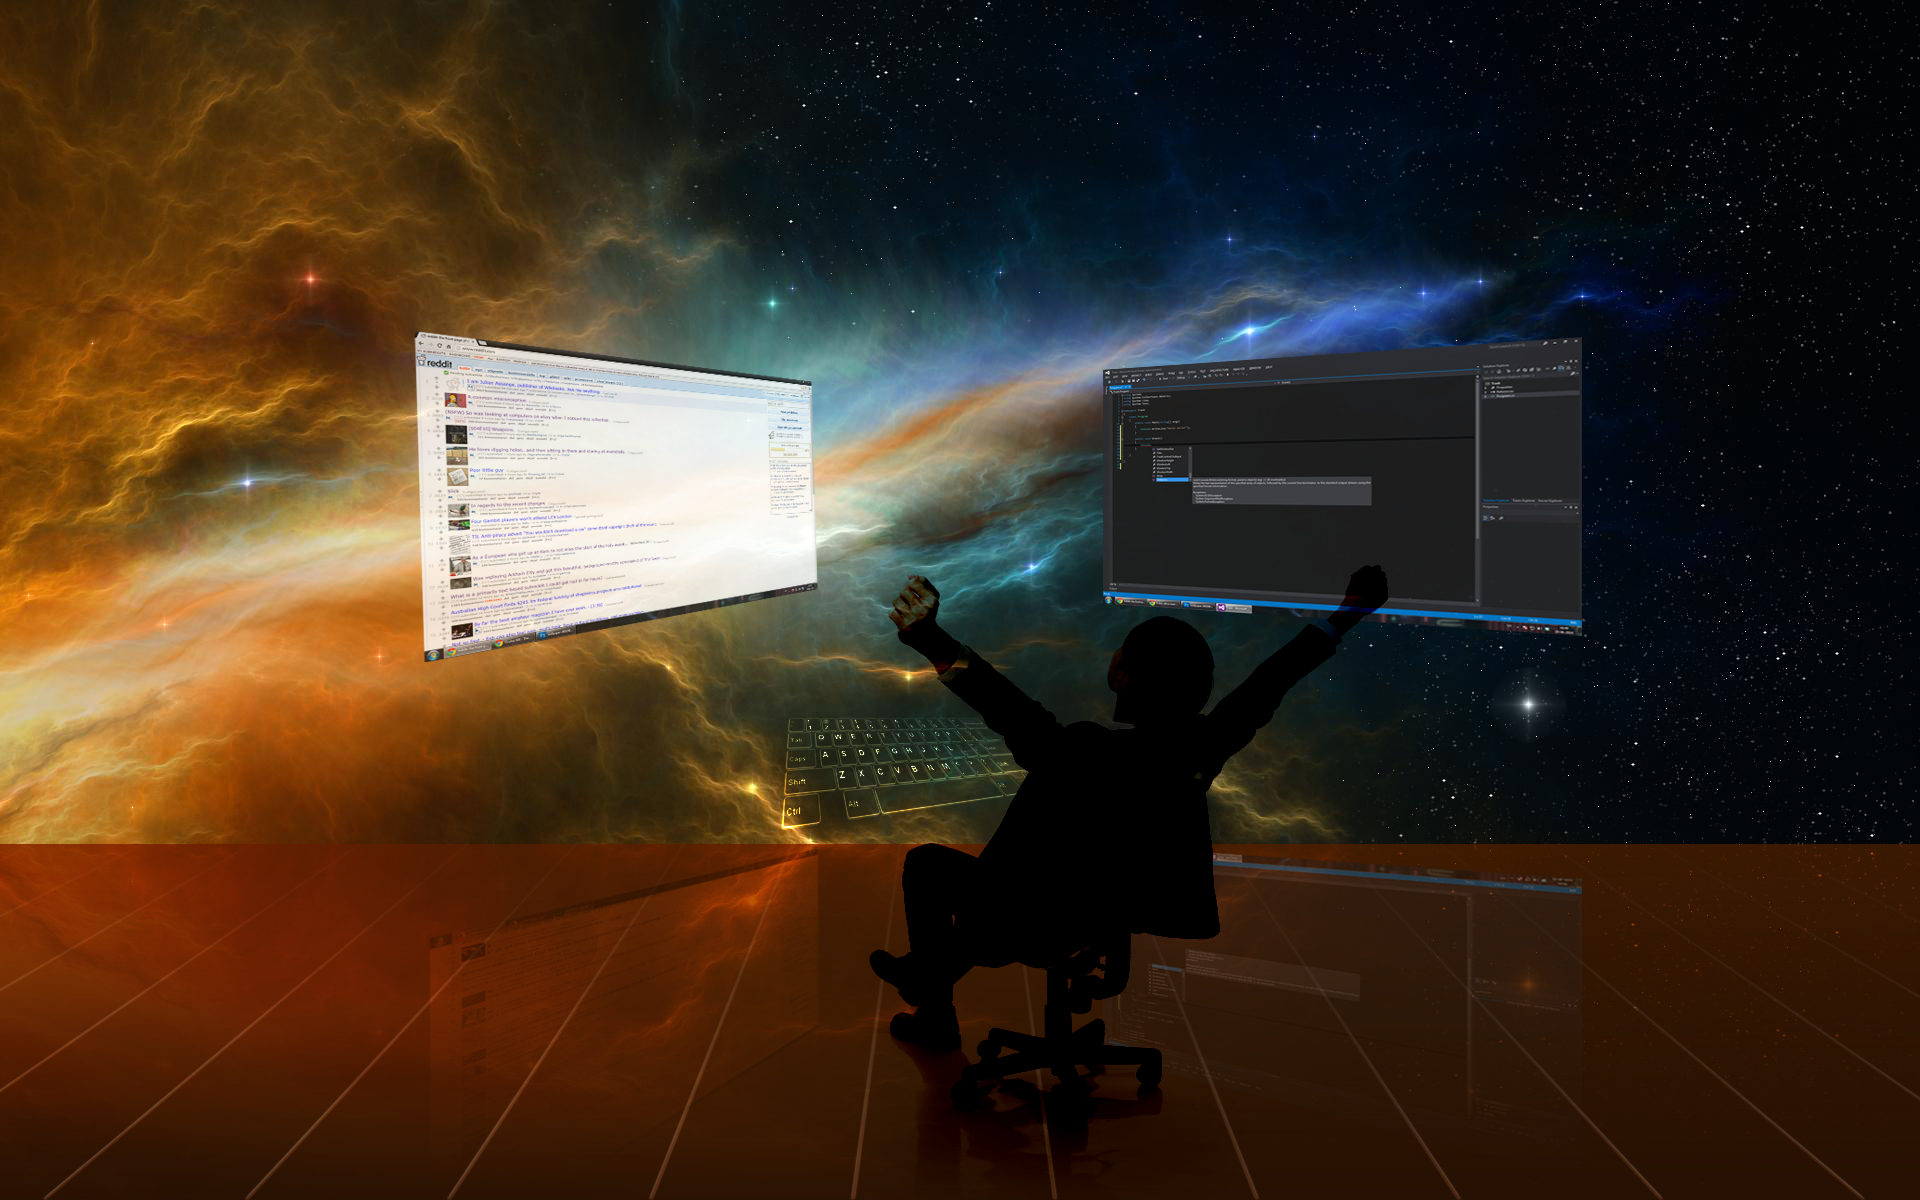 person in chair looking at computer screens and deep space background